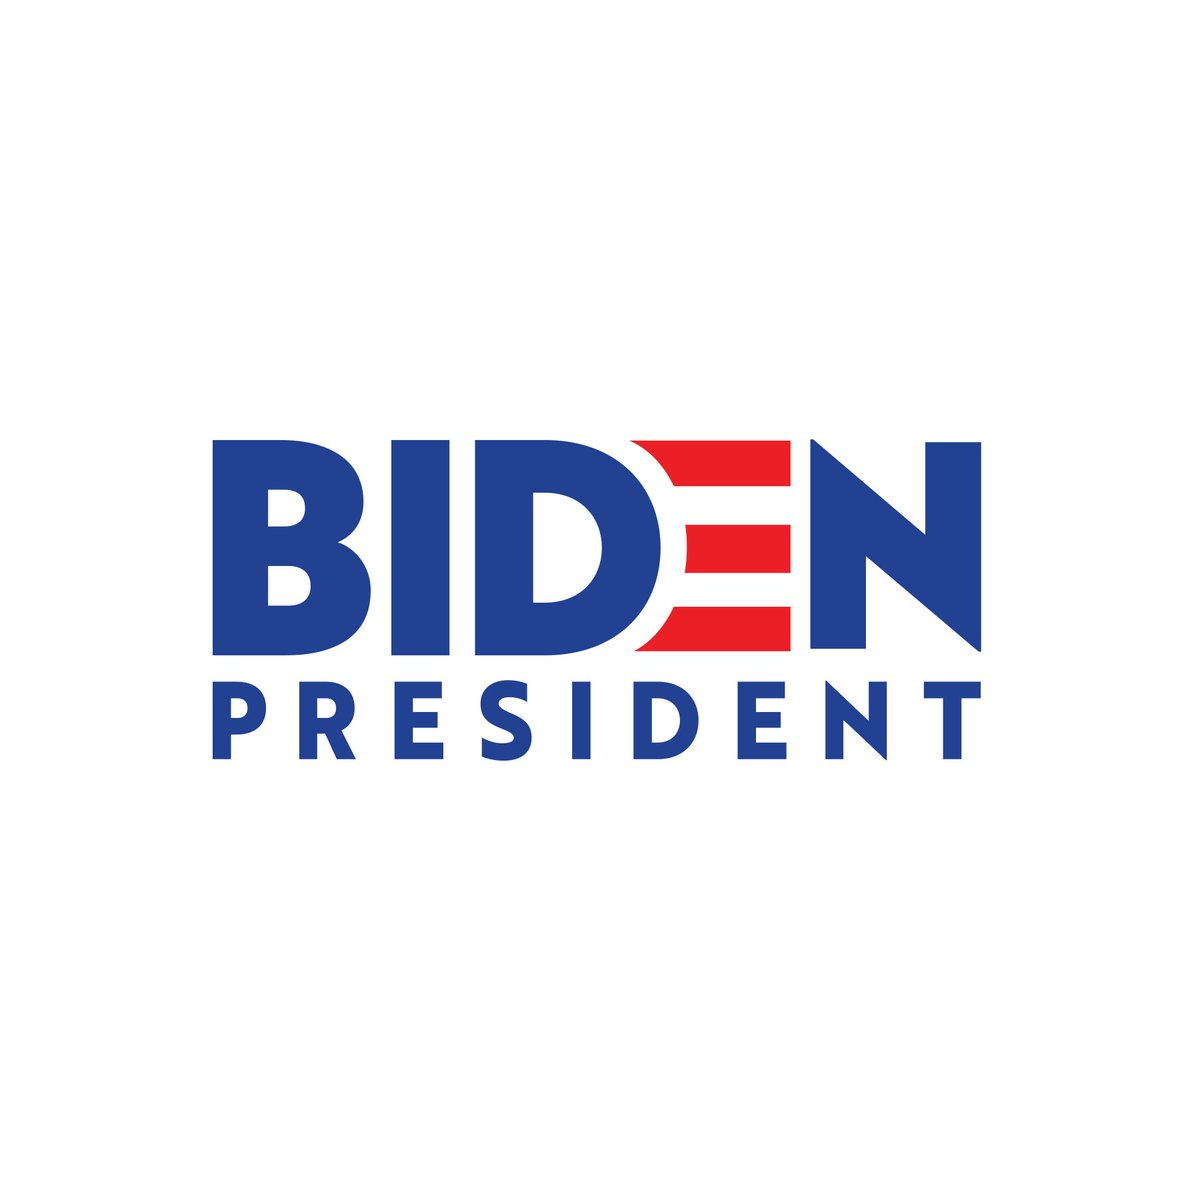 Center For American Politics And Design On Twitter Former Vice President Joebiden Officially Launches His 2020 Democratic Presidential Campaign His Logo Uses Traditional Red And Blue Colors Stripes Bold Last Name Emphasis